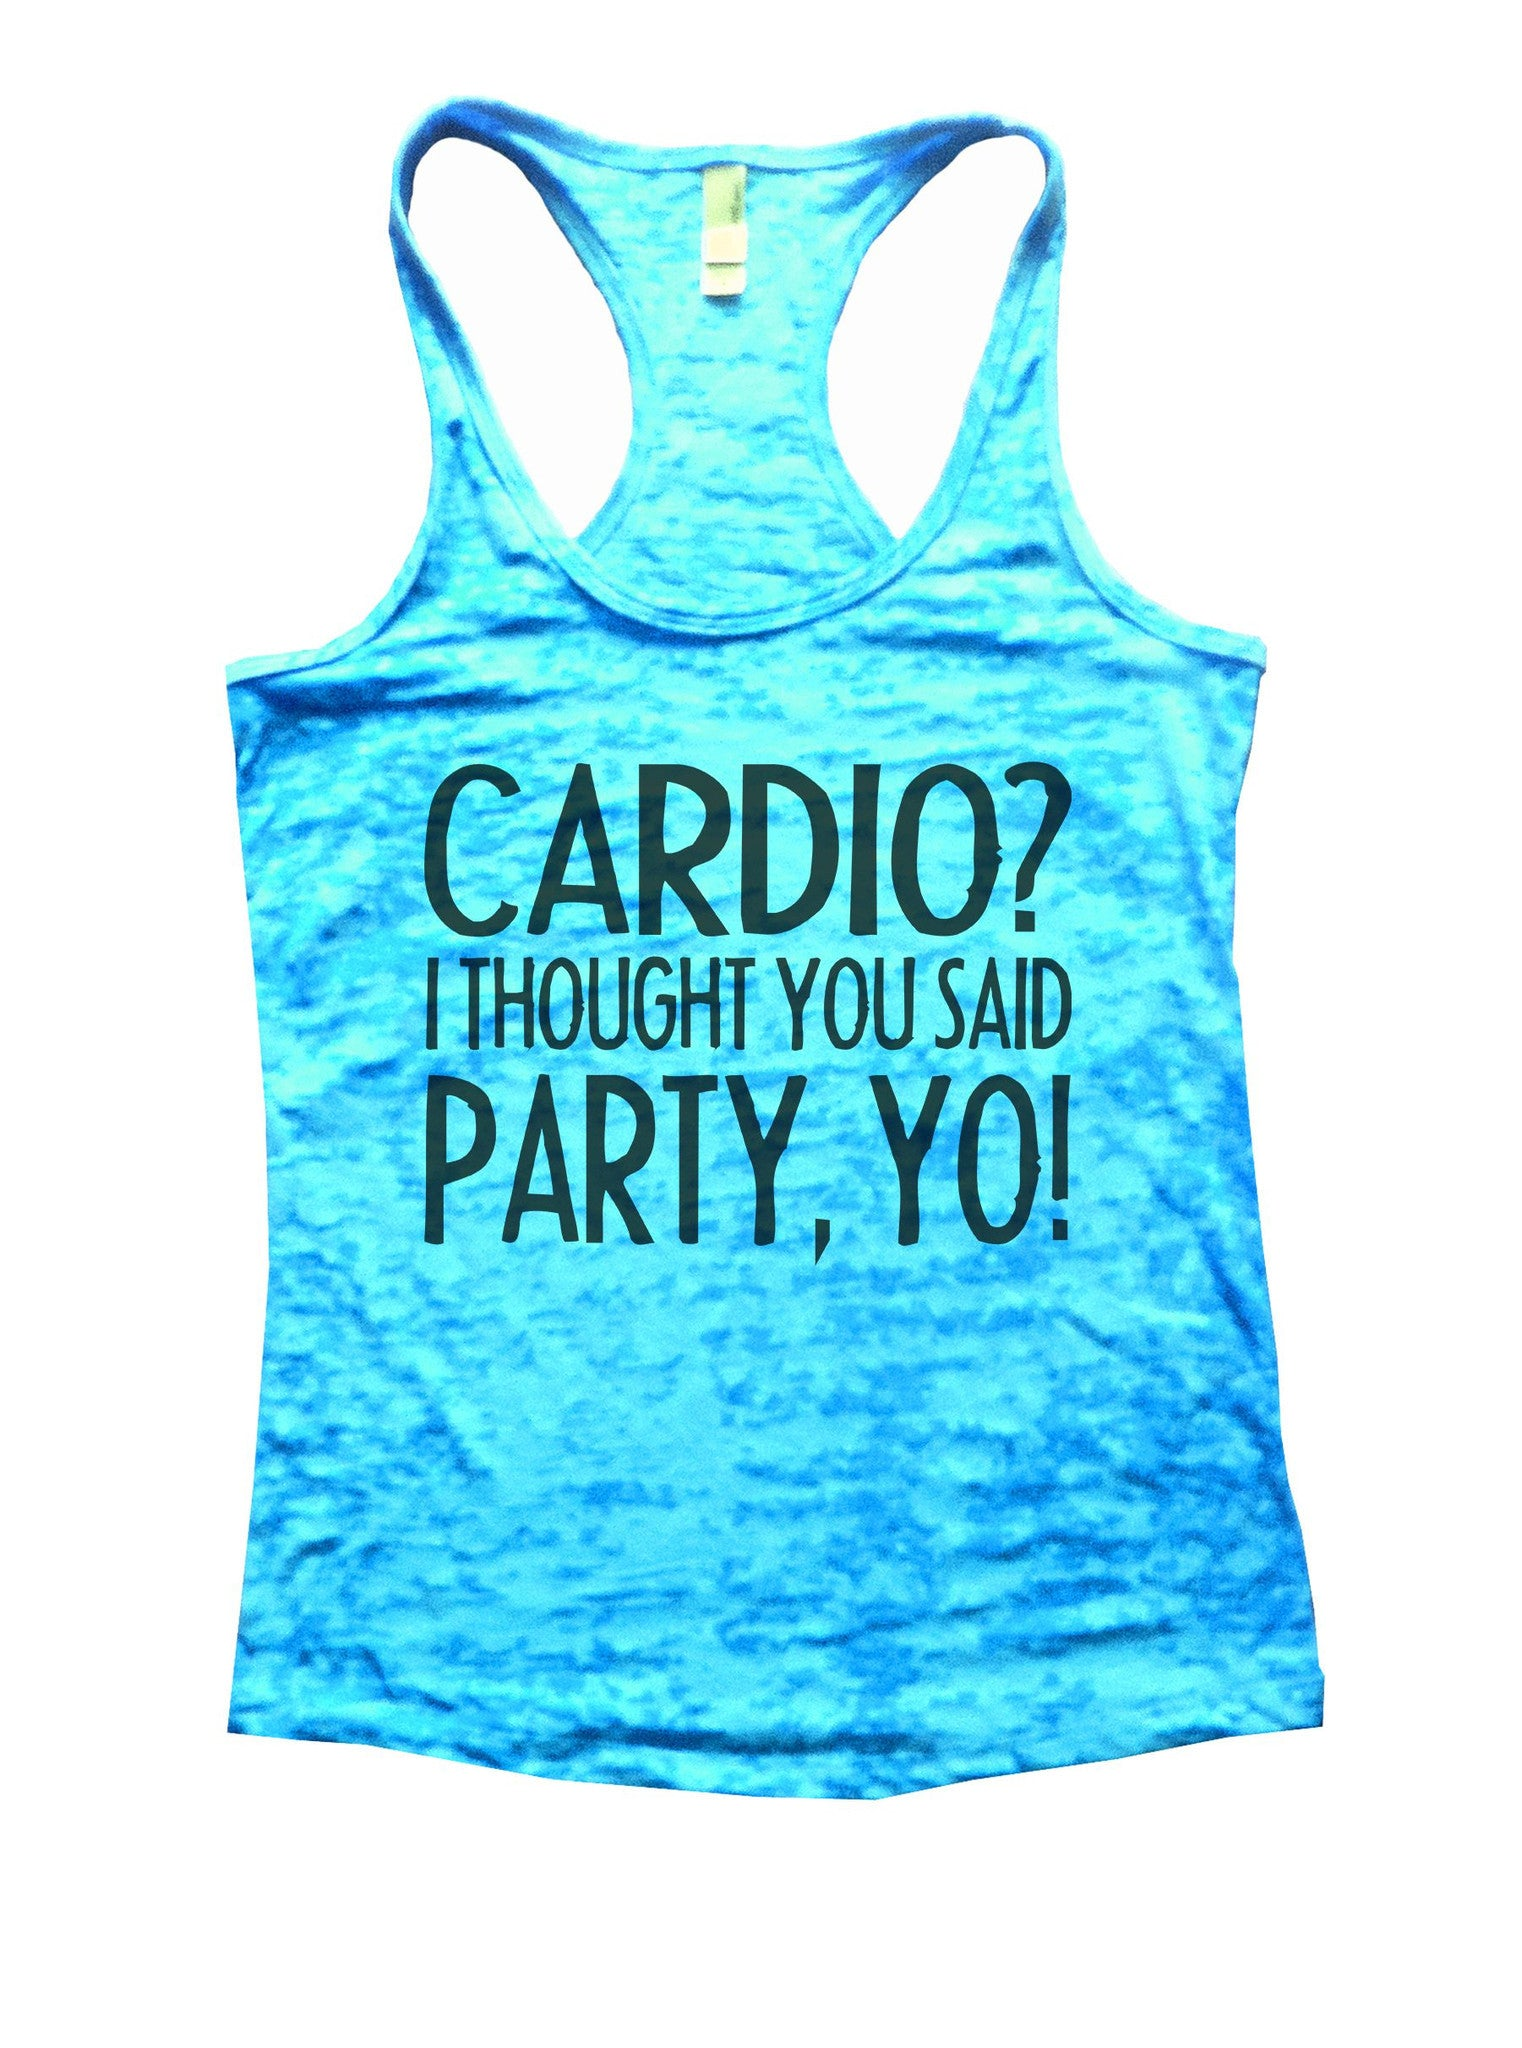 Cardio? I Thought You Said Party, Yo! Burnout Tank Top By BurnoutTankTops.com - 932 - Funny Shirts Tank Tops Burnouts and Triblends  - 6